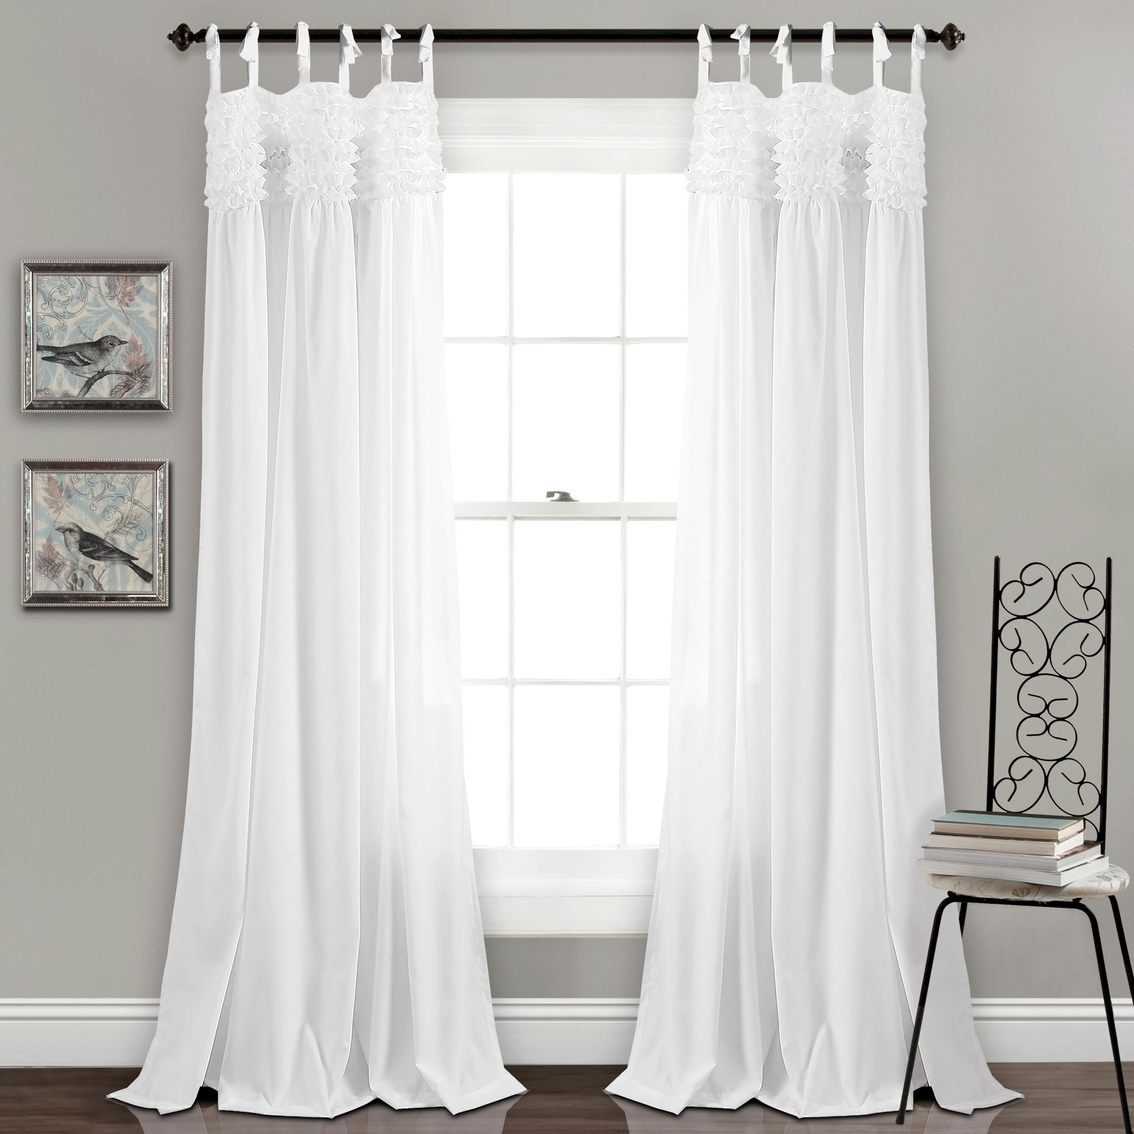 Ruffle Curtain Panel Lush Decor Lydia Ruffle 84 X 40 Curtain Panel 2 Pk Curtains